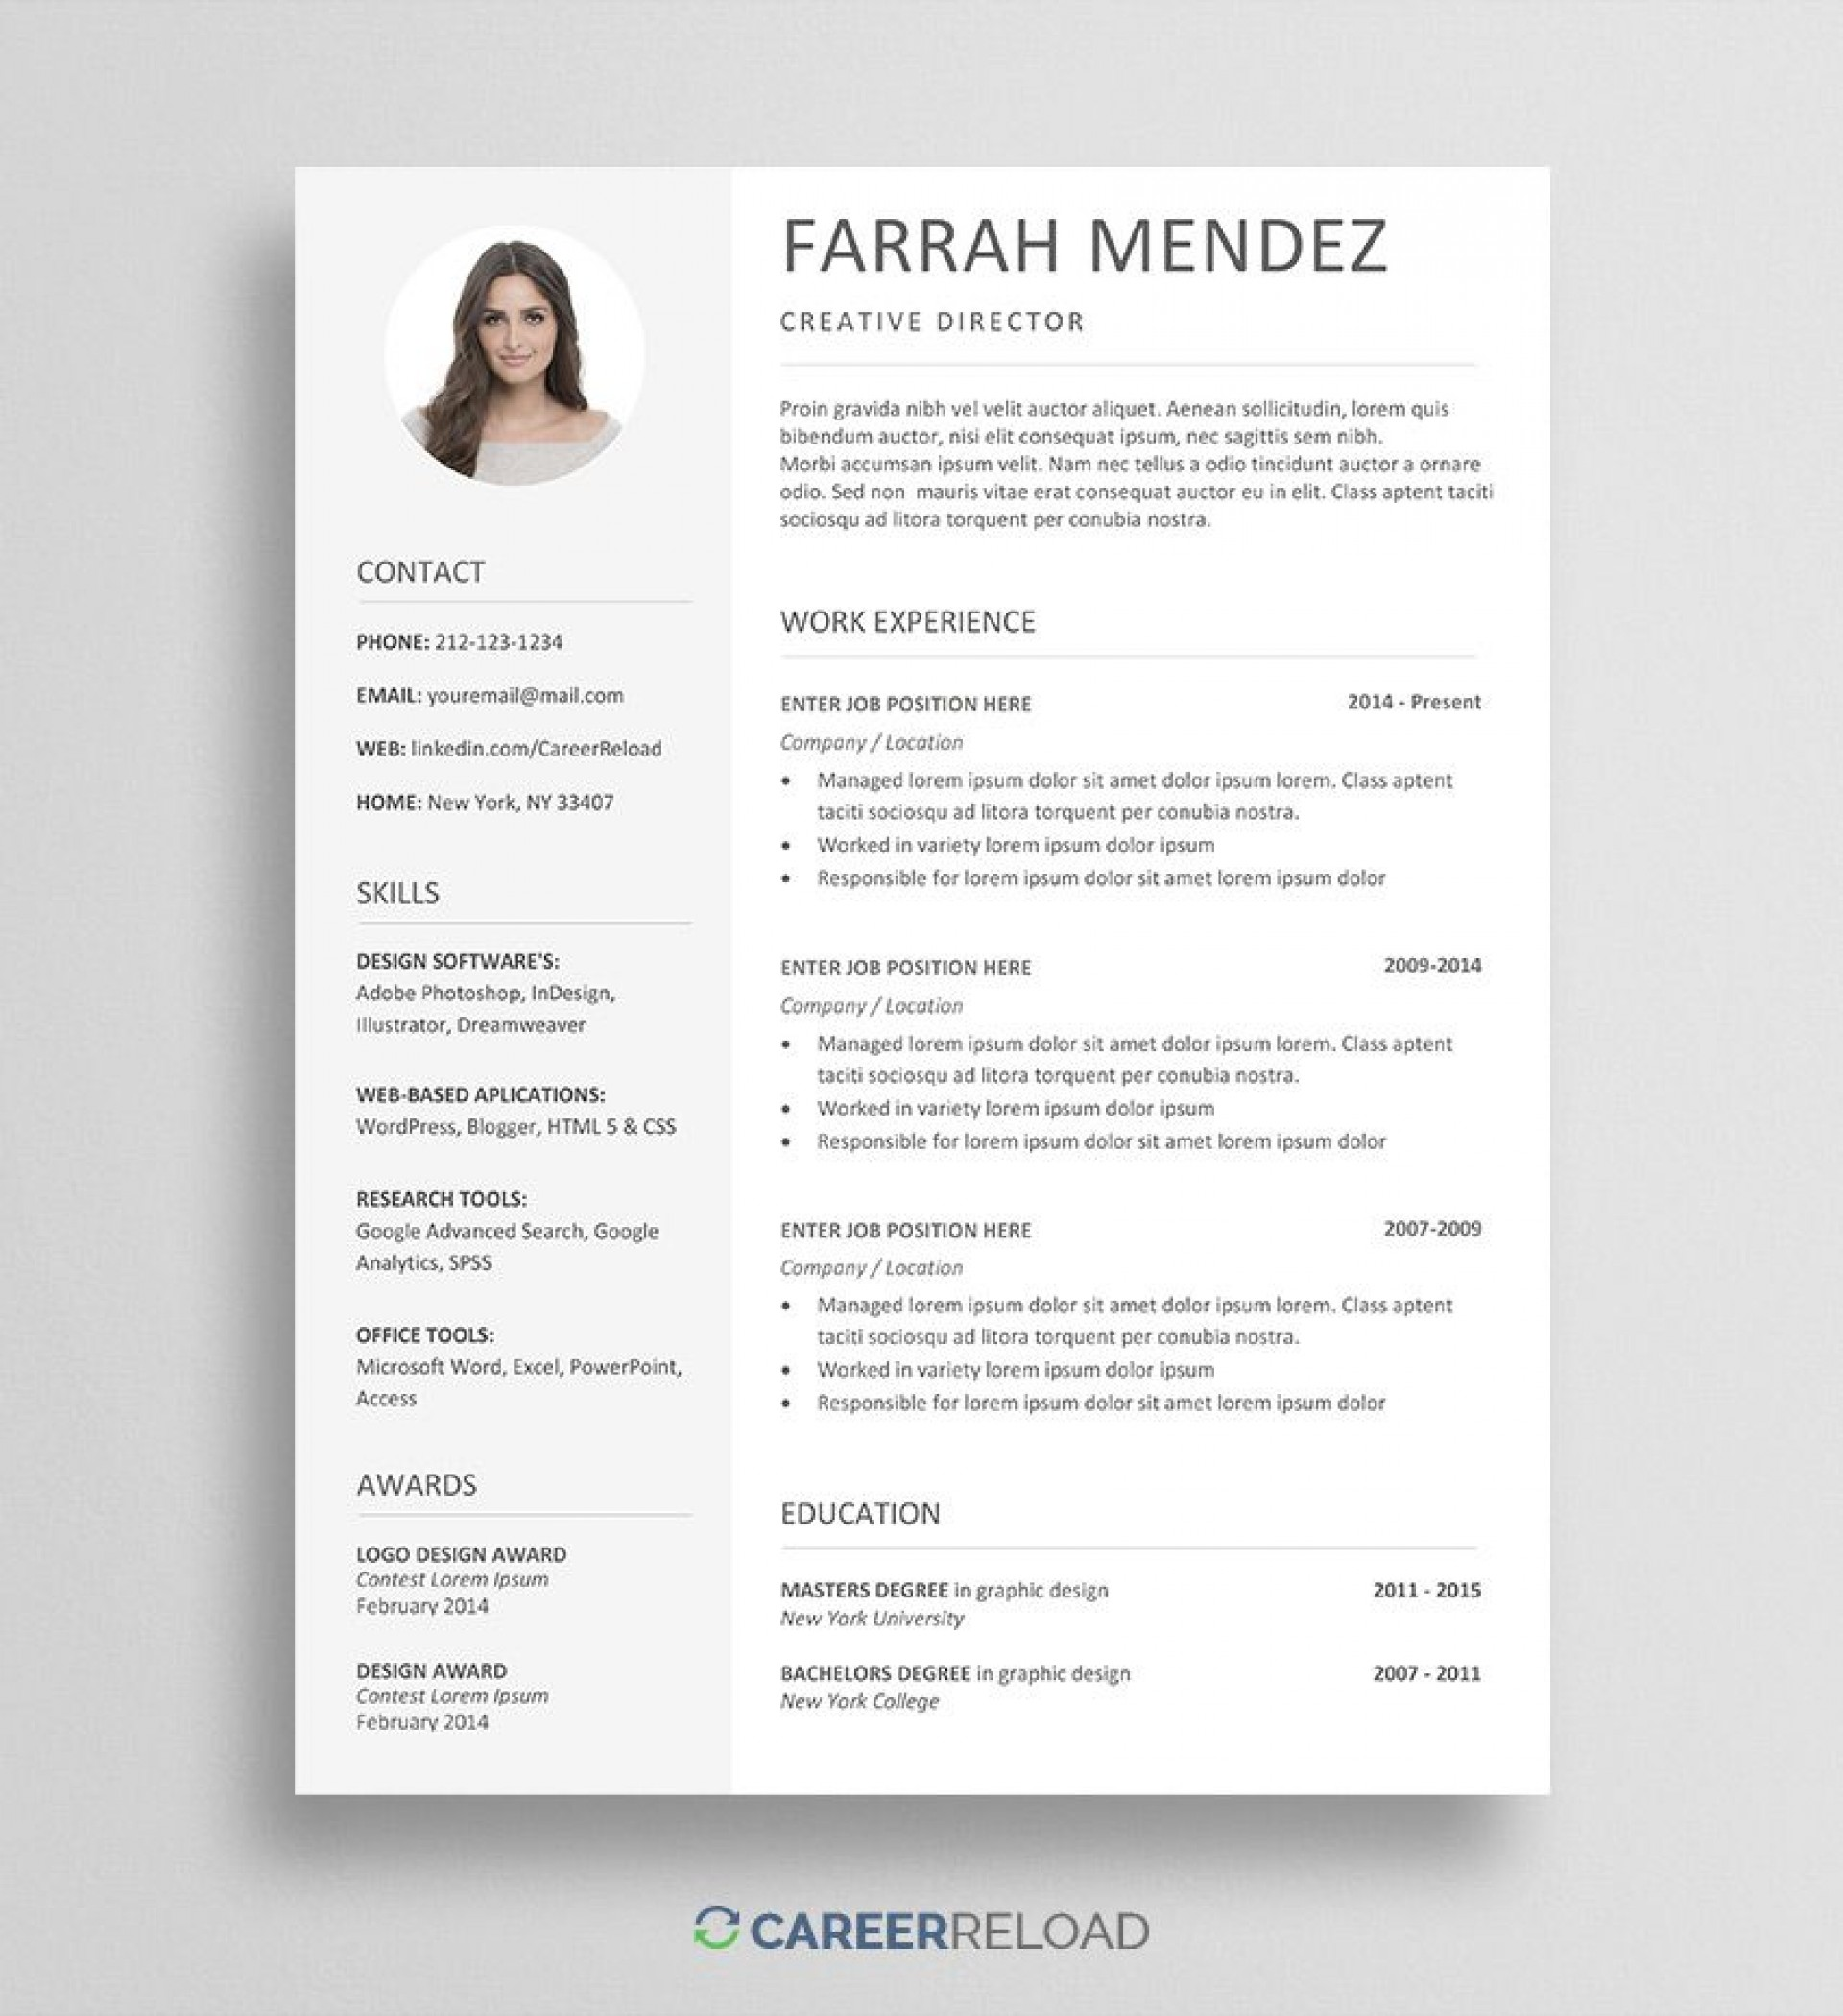 007 Magnificent Entry Level Resume Template Word Download Highest Clarity 1920